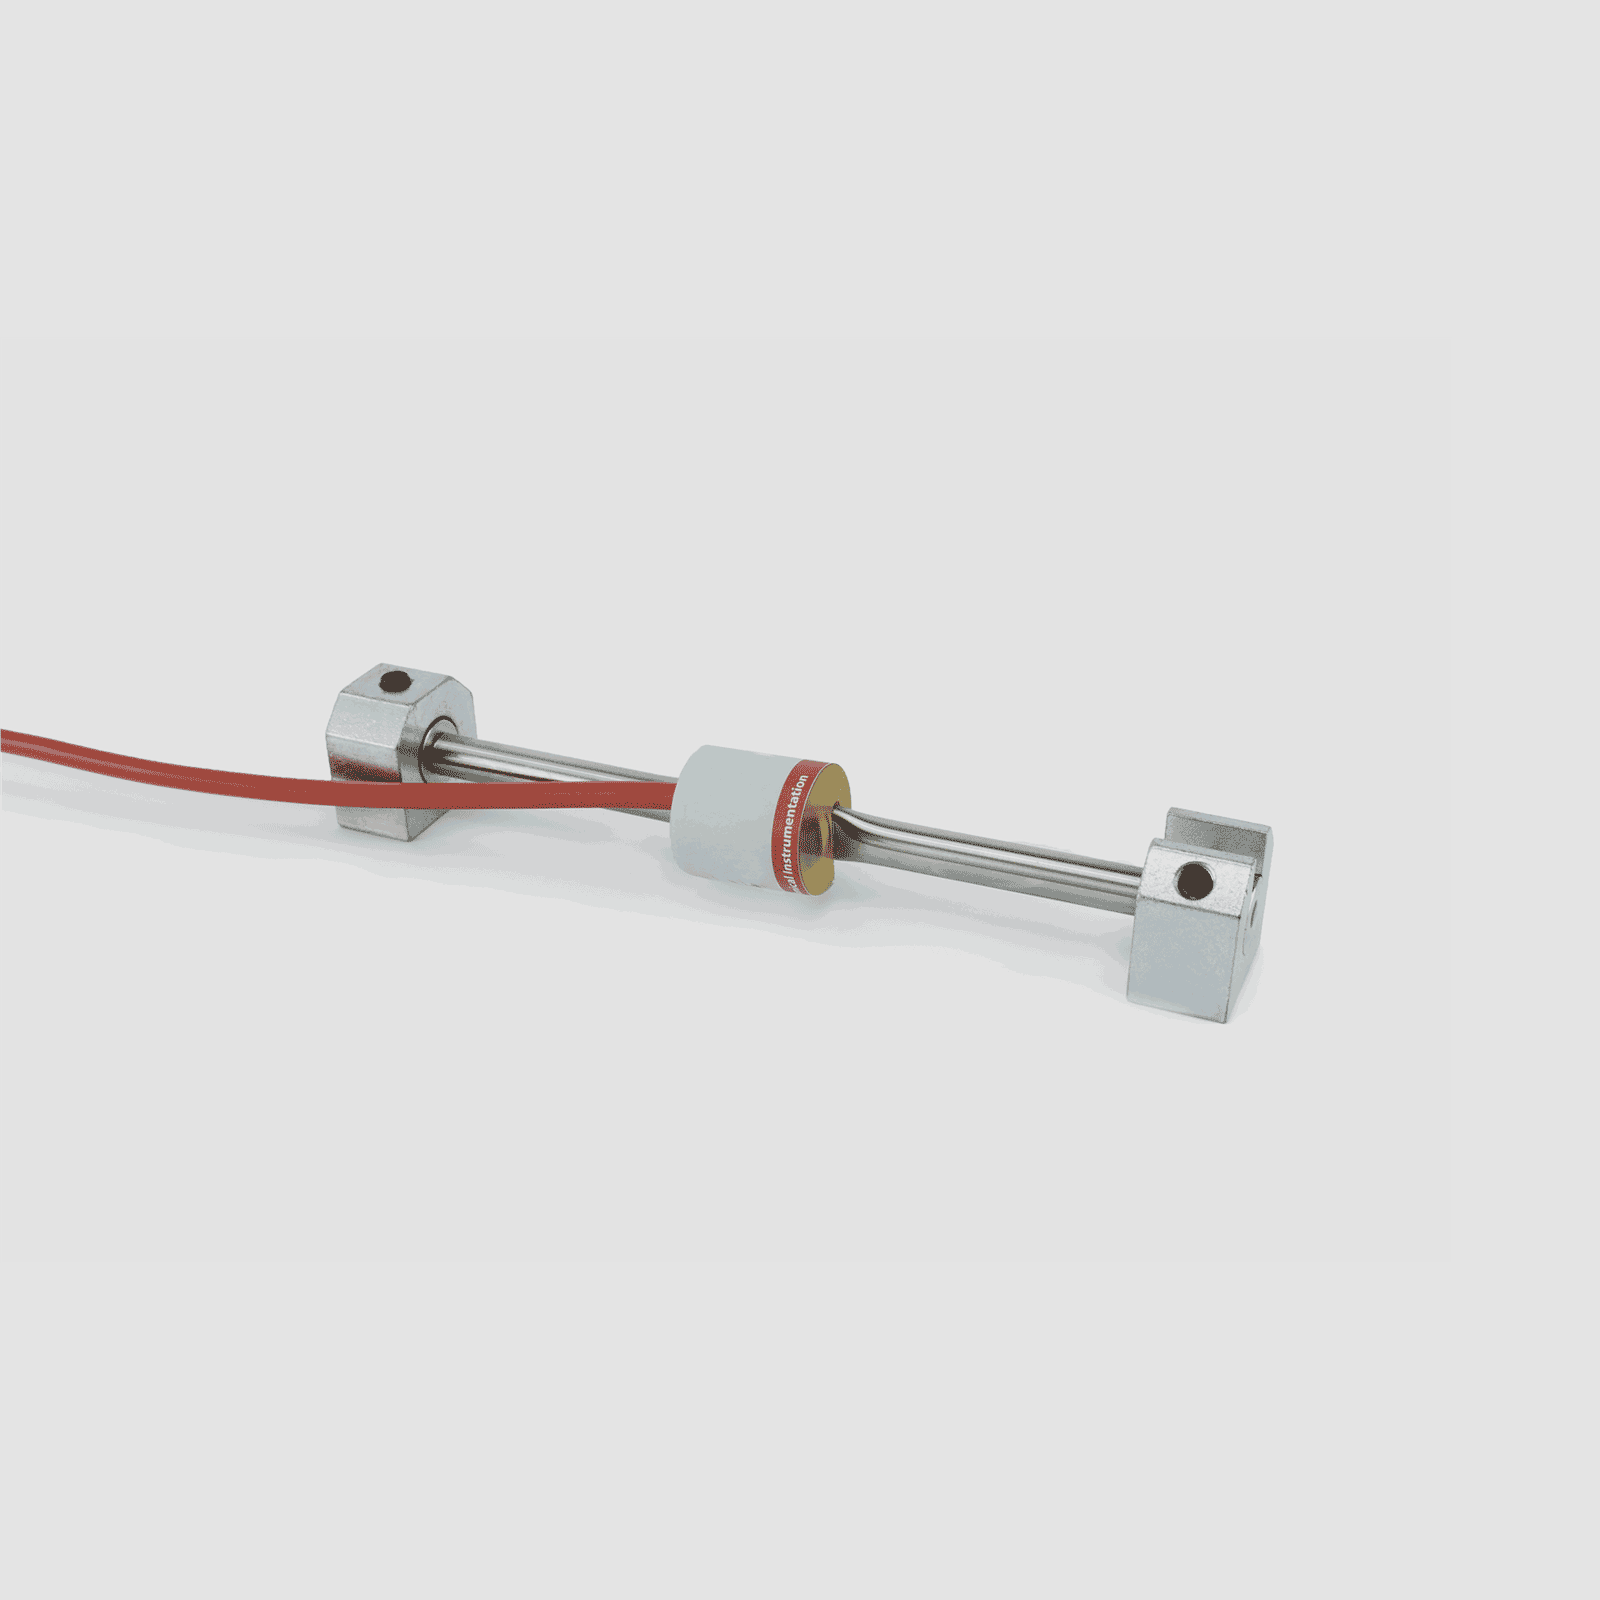 Vibrating Wire Strain Gauges